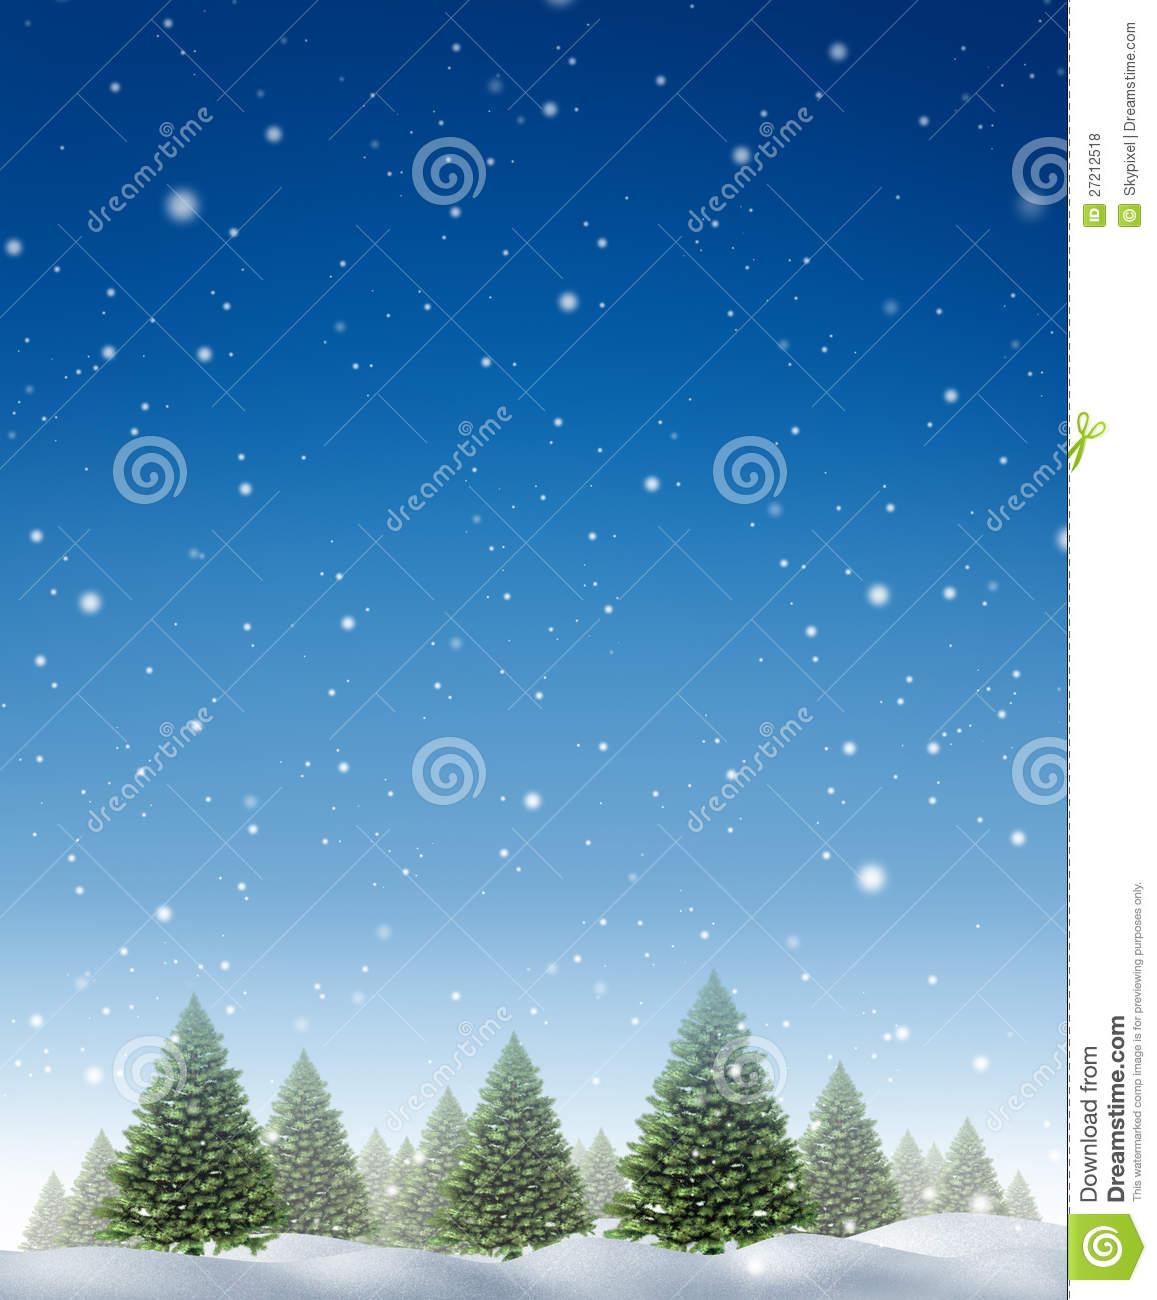 Snow Falling Wallpaper Download Winter Holiday Background Royalty Free Stock Photos